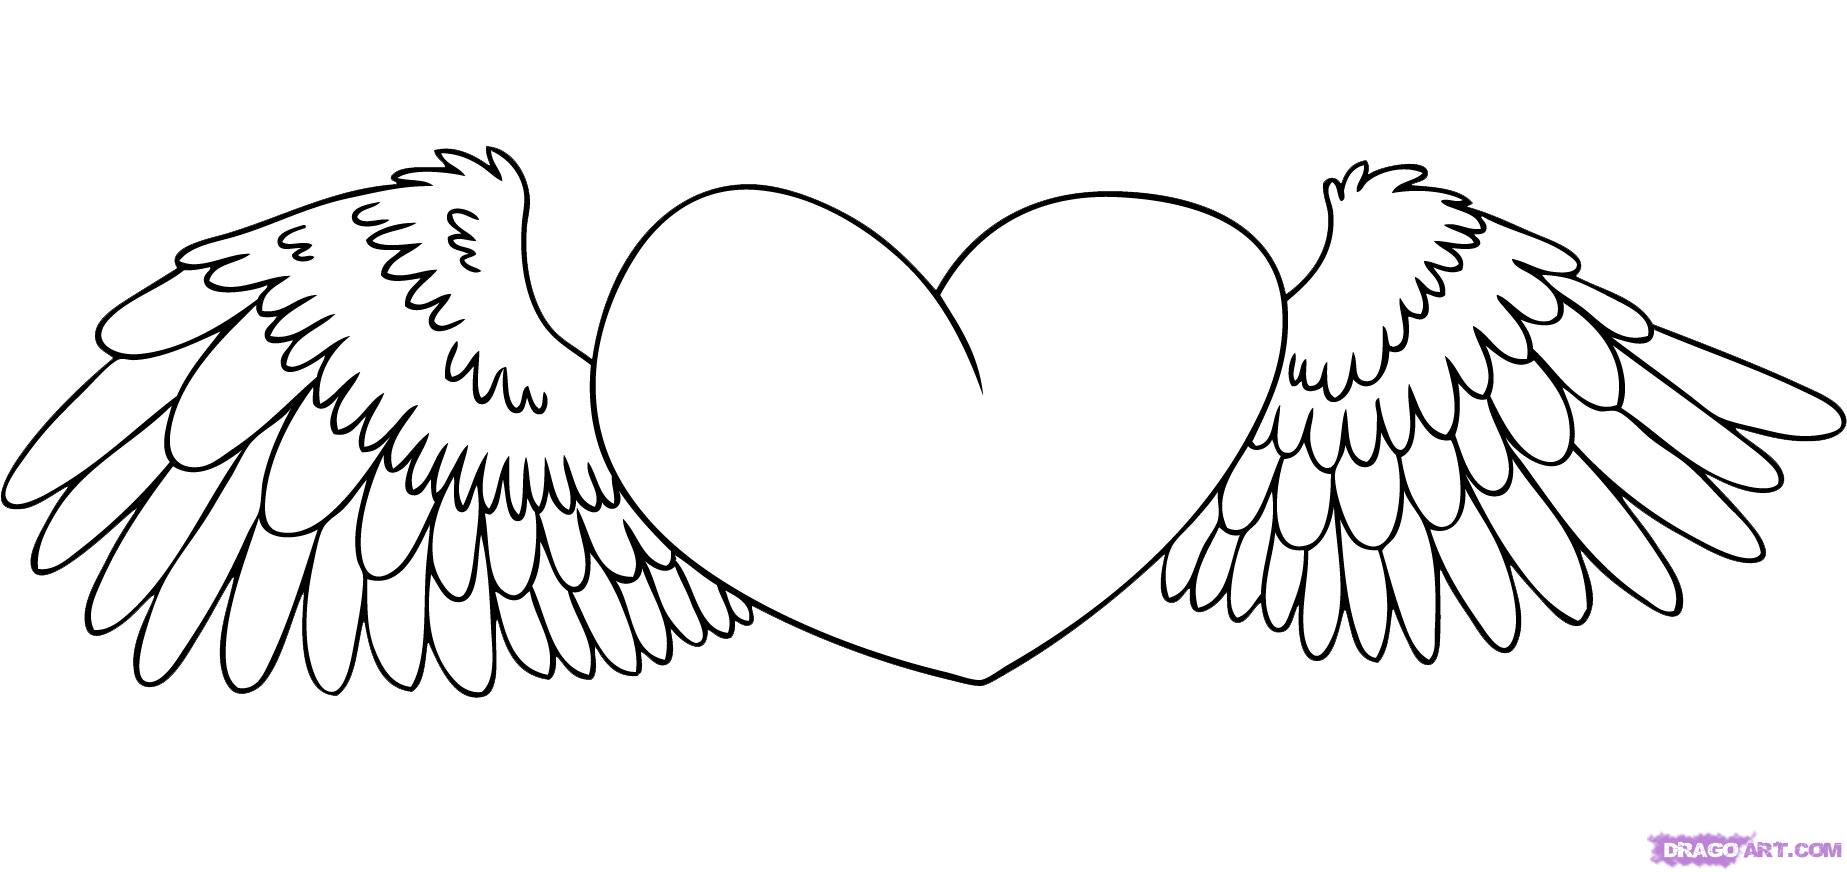 coloring pages of hearts with wings coloring page of hearts with wings coloring pages heart with of coloring hearts wings pages